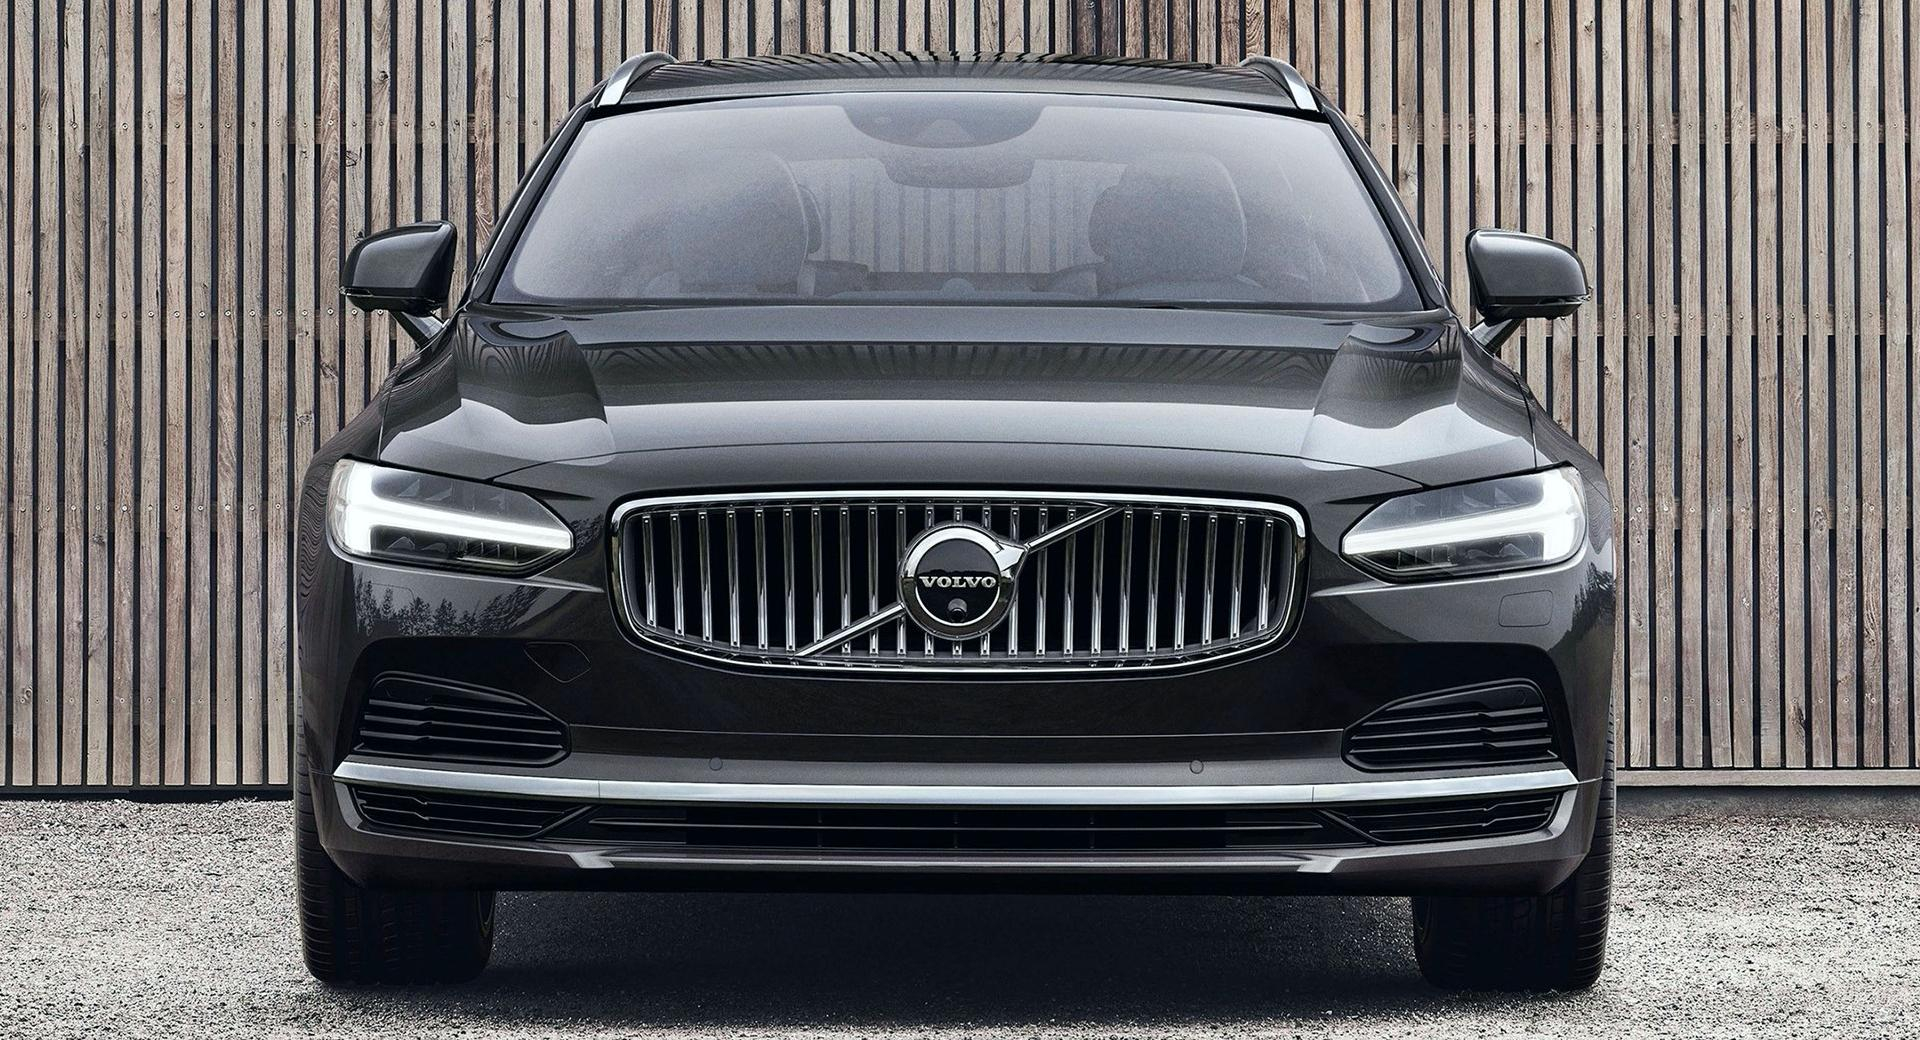 There's A Facelift Hidden Somewhere On The 2021 Volvo S90 2021 Chevy Volt Charger, Changes, Dimensions